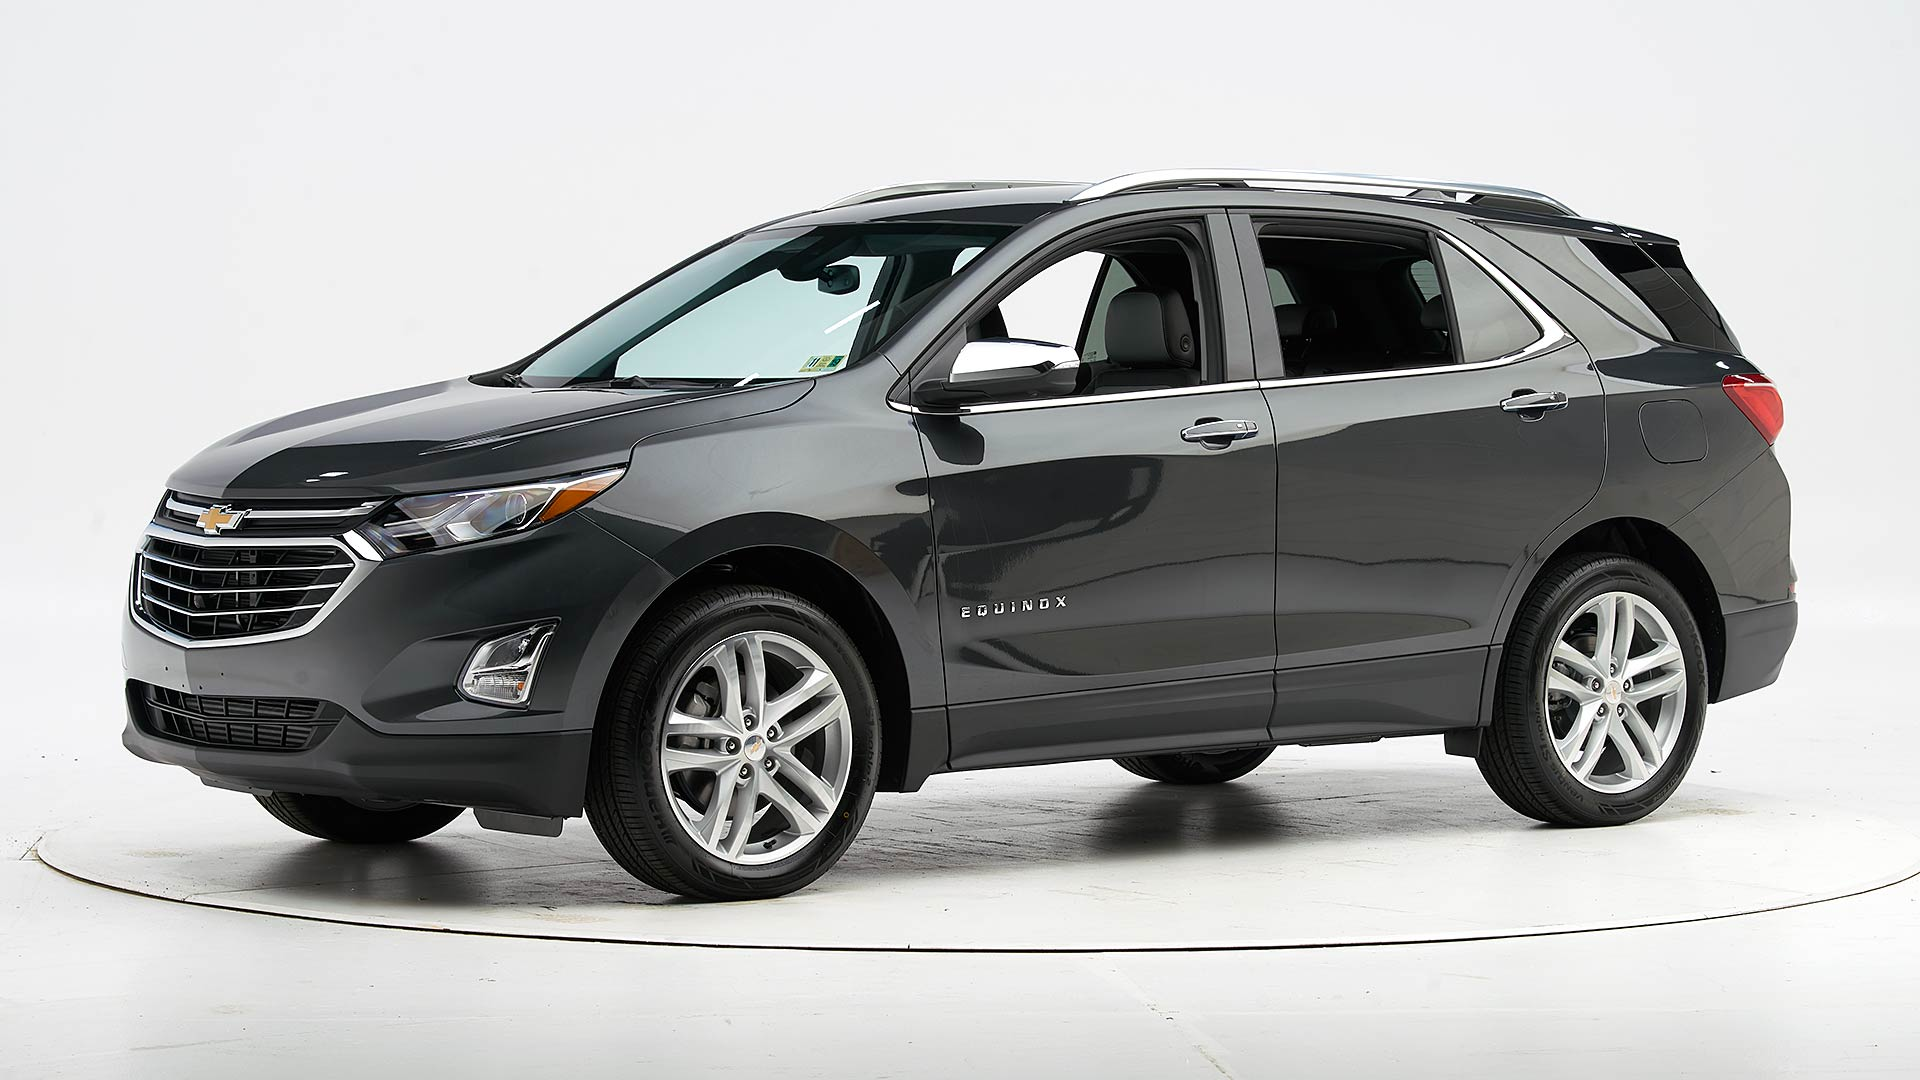 2020 Chevrolet Equinox Captures Top Safety Pick Award